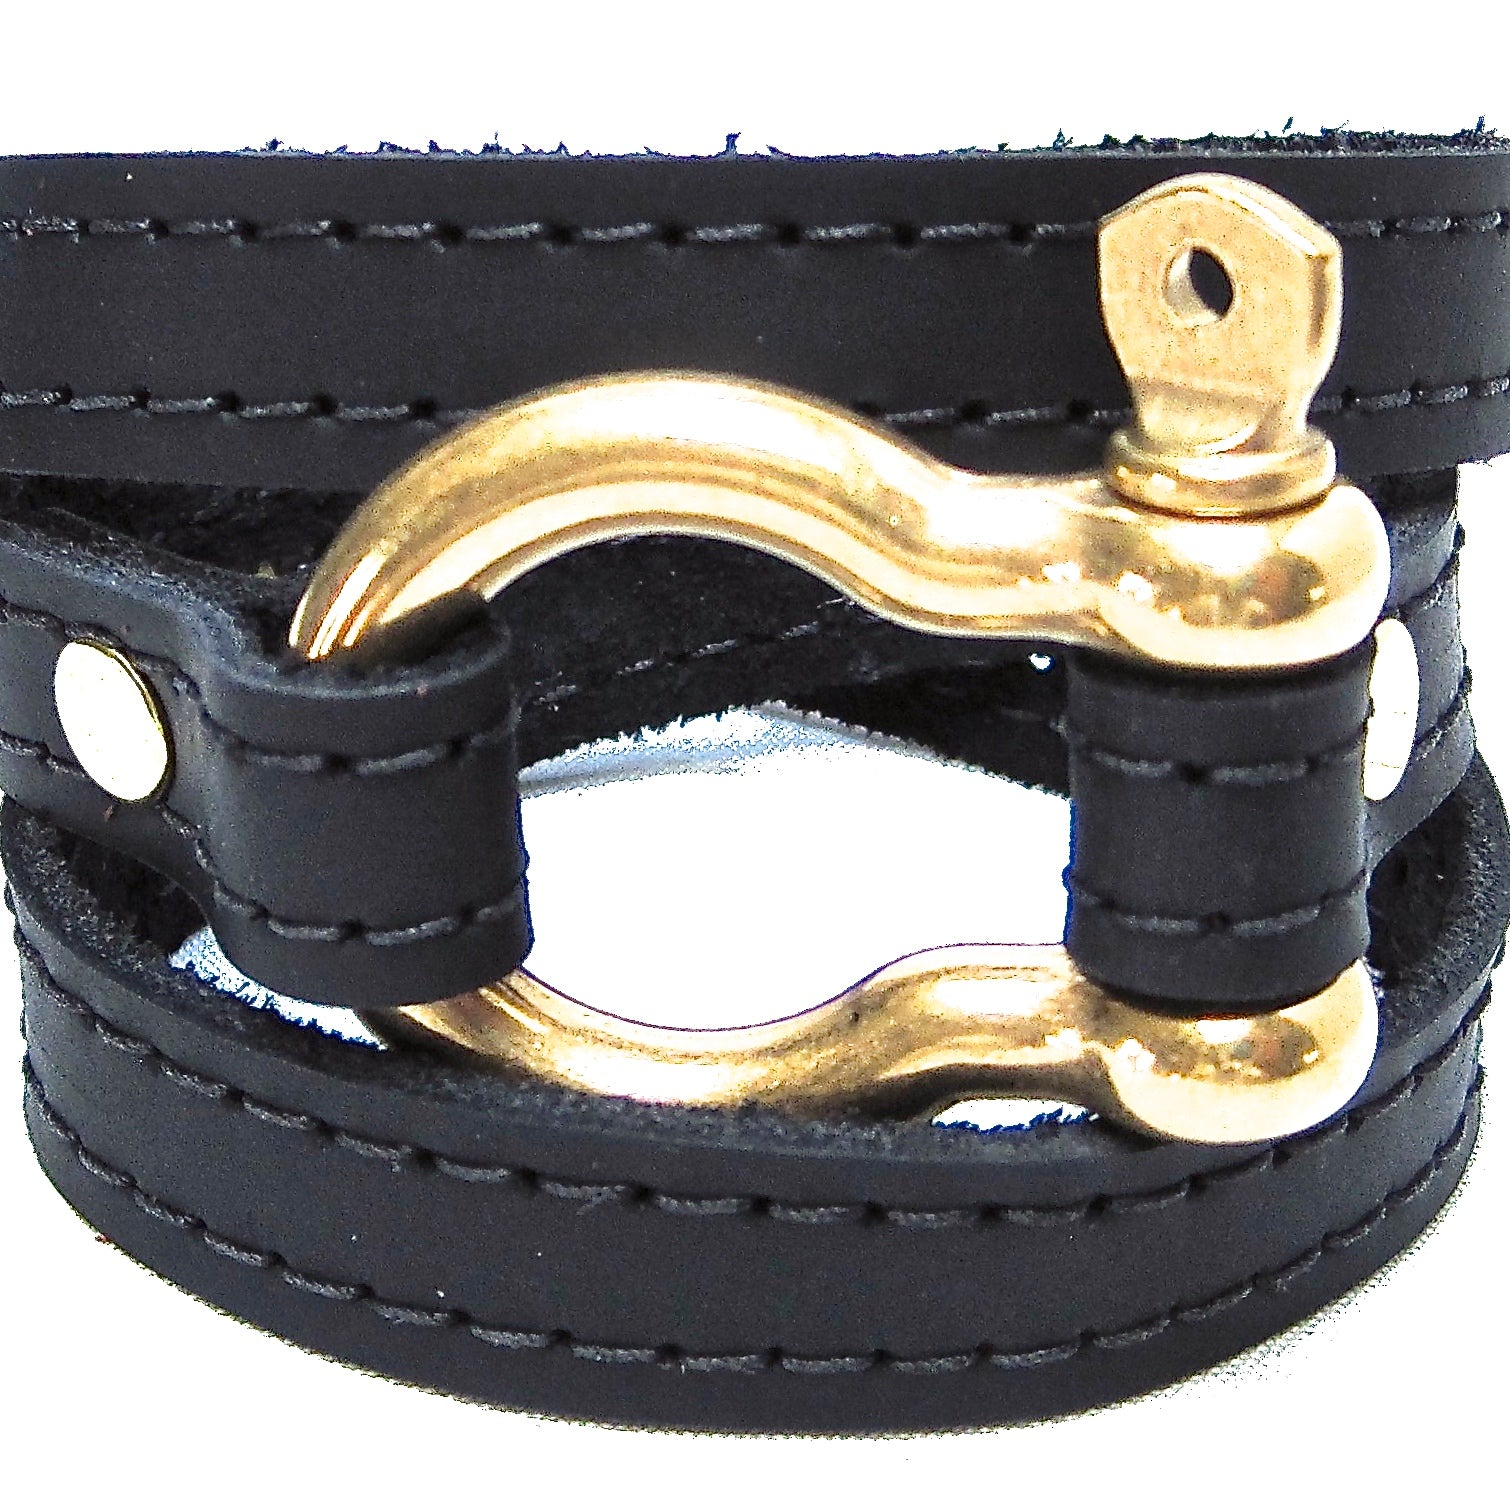 Nyet jewelry Signature Gold Shackle Wraparound Bracelet Black BY NYET JEWELRY